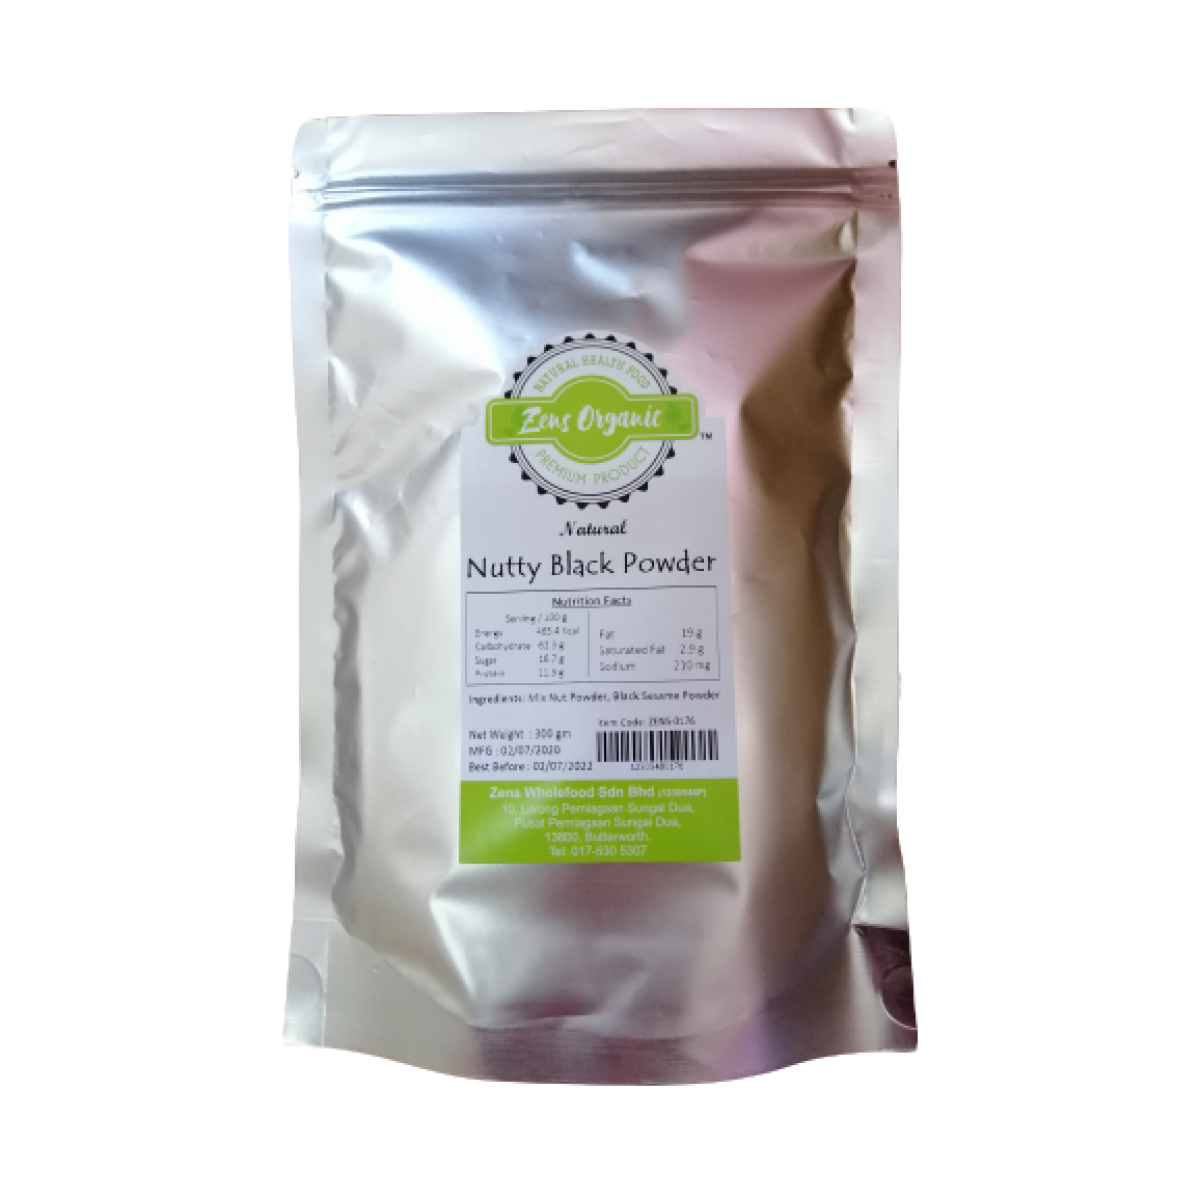 Zens Organic Natural & Organic Nutty Black Powder 300g